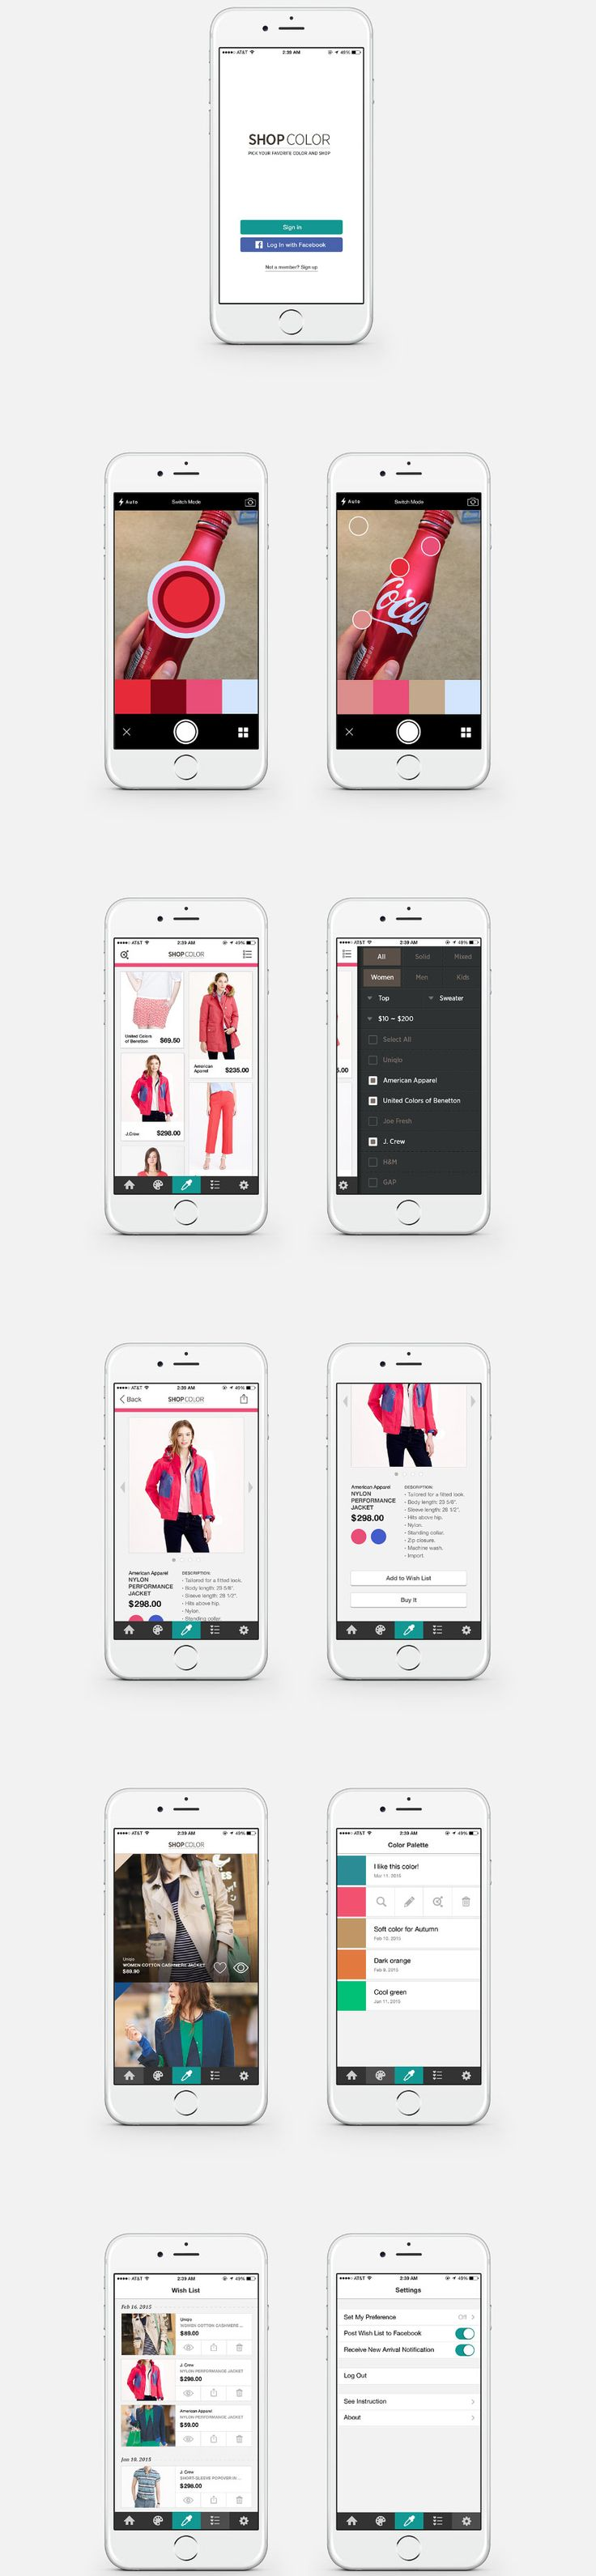 Daily Mobile UI Design Inspiration #514